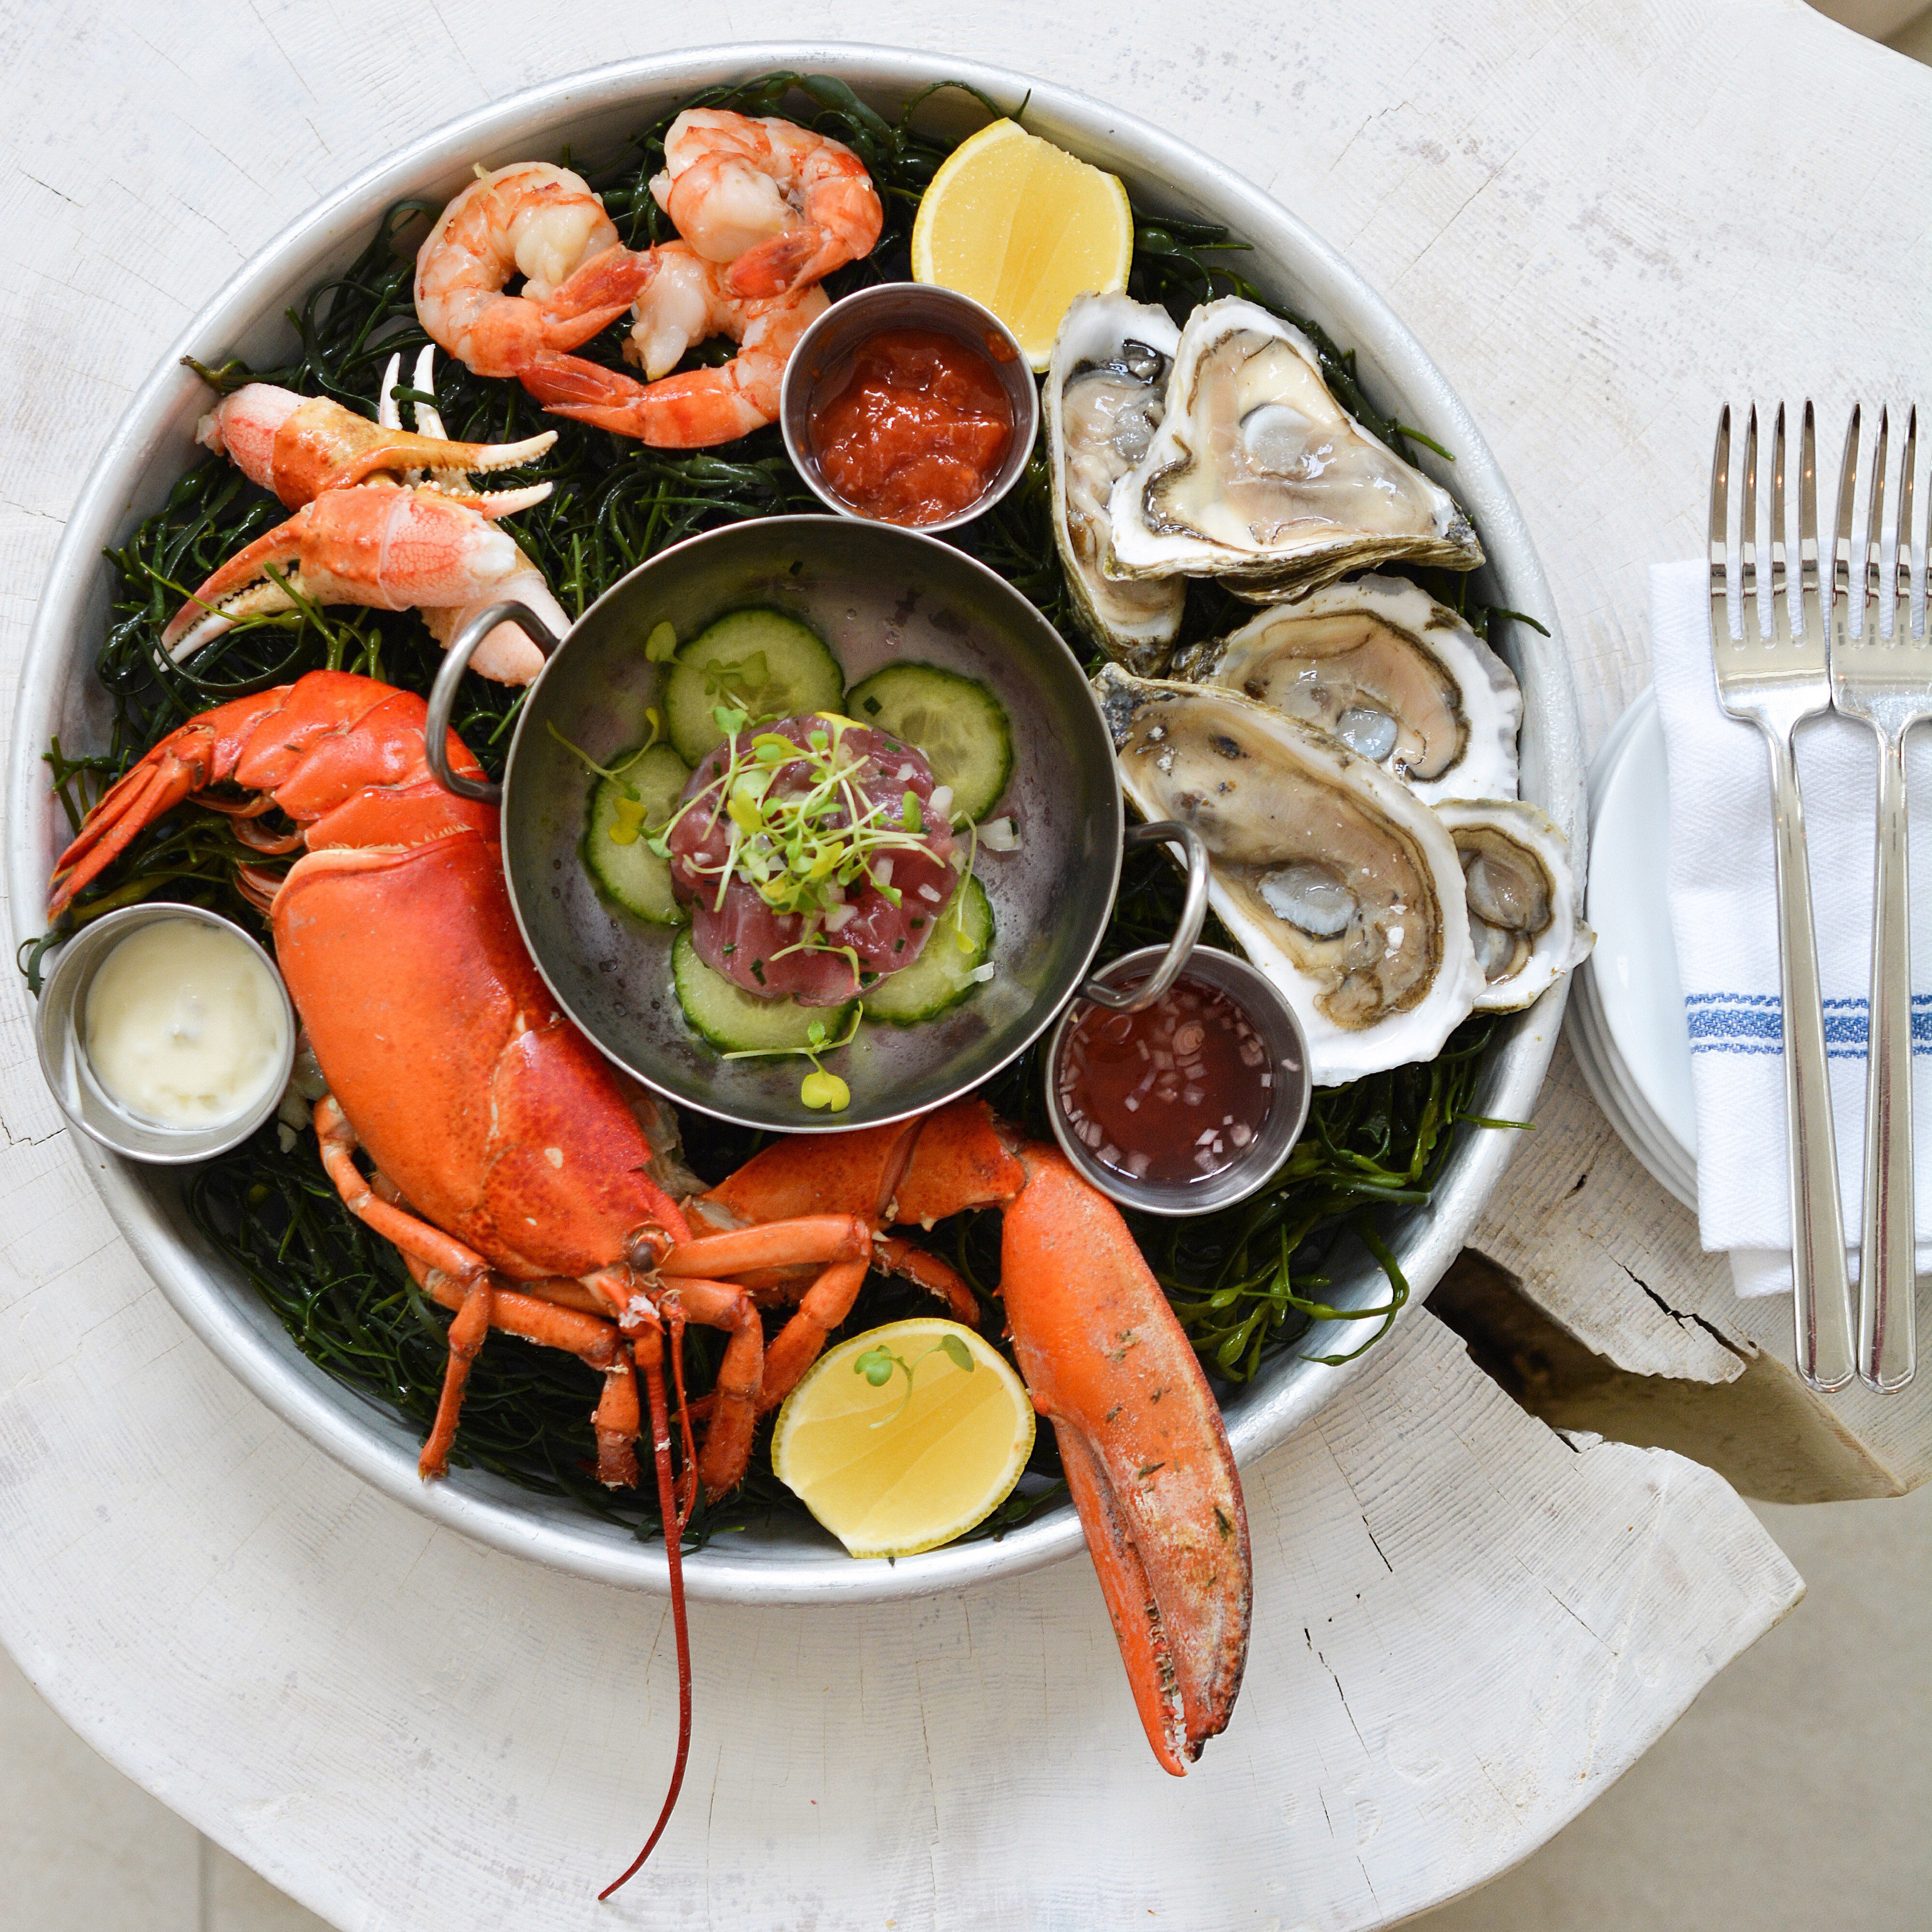 Hotels food plate cuisine Seafood fish asian food toppings